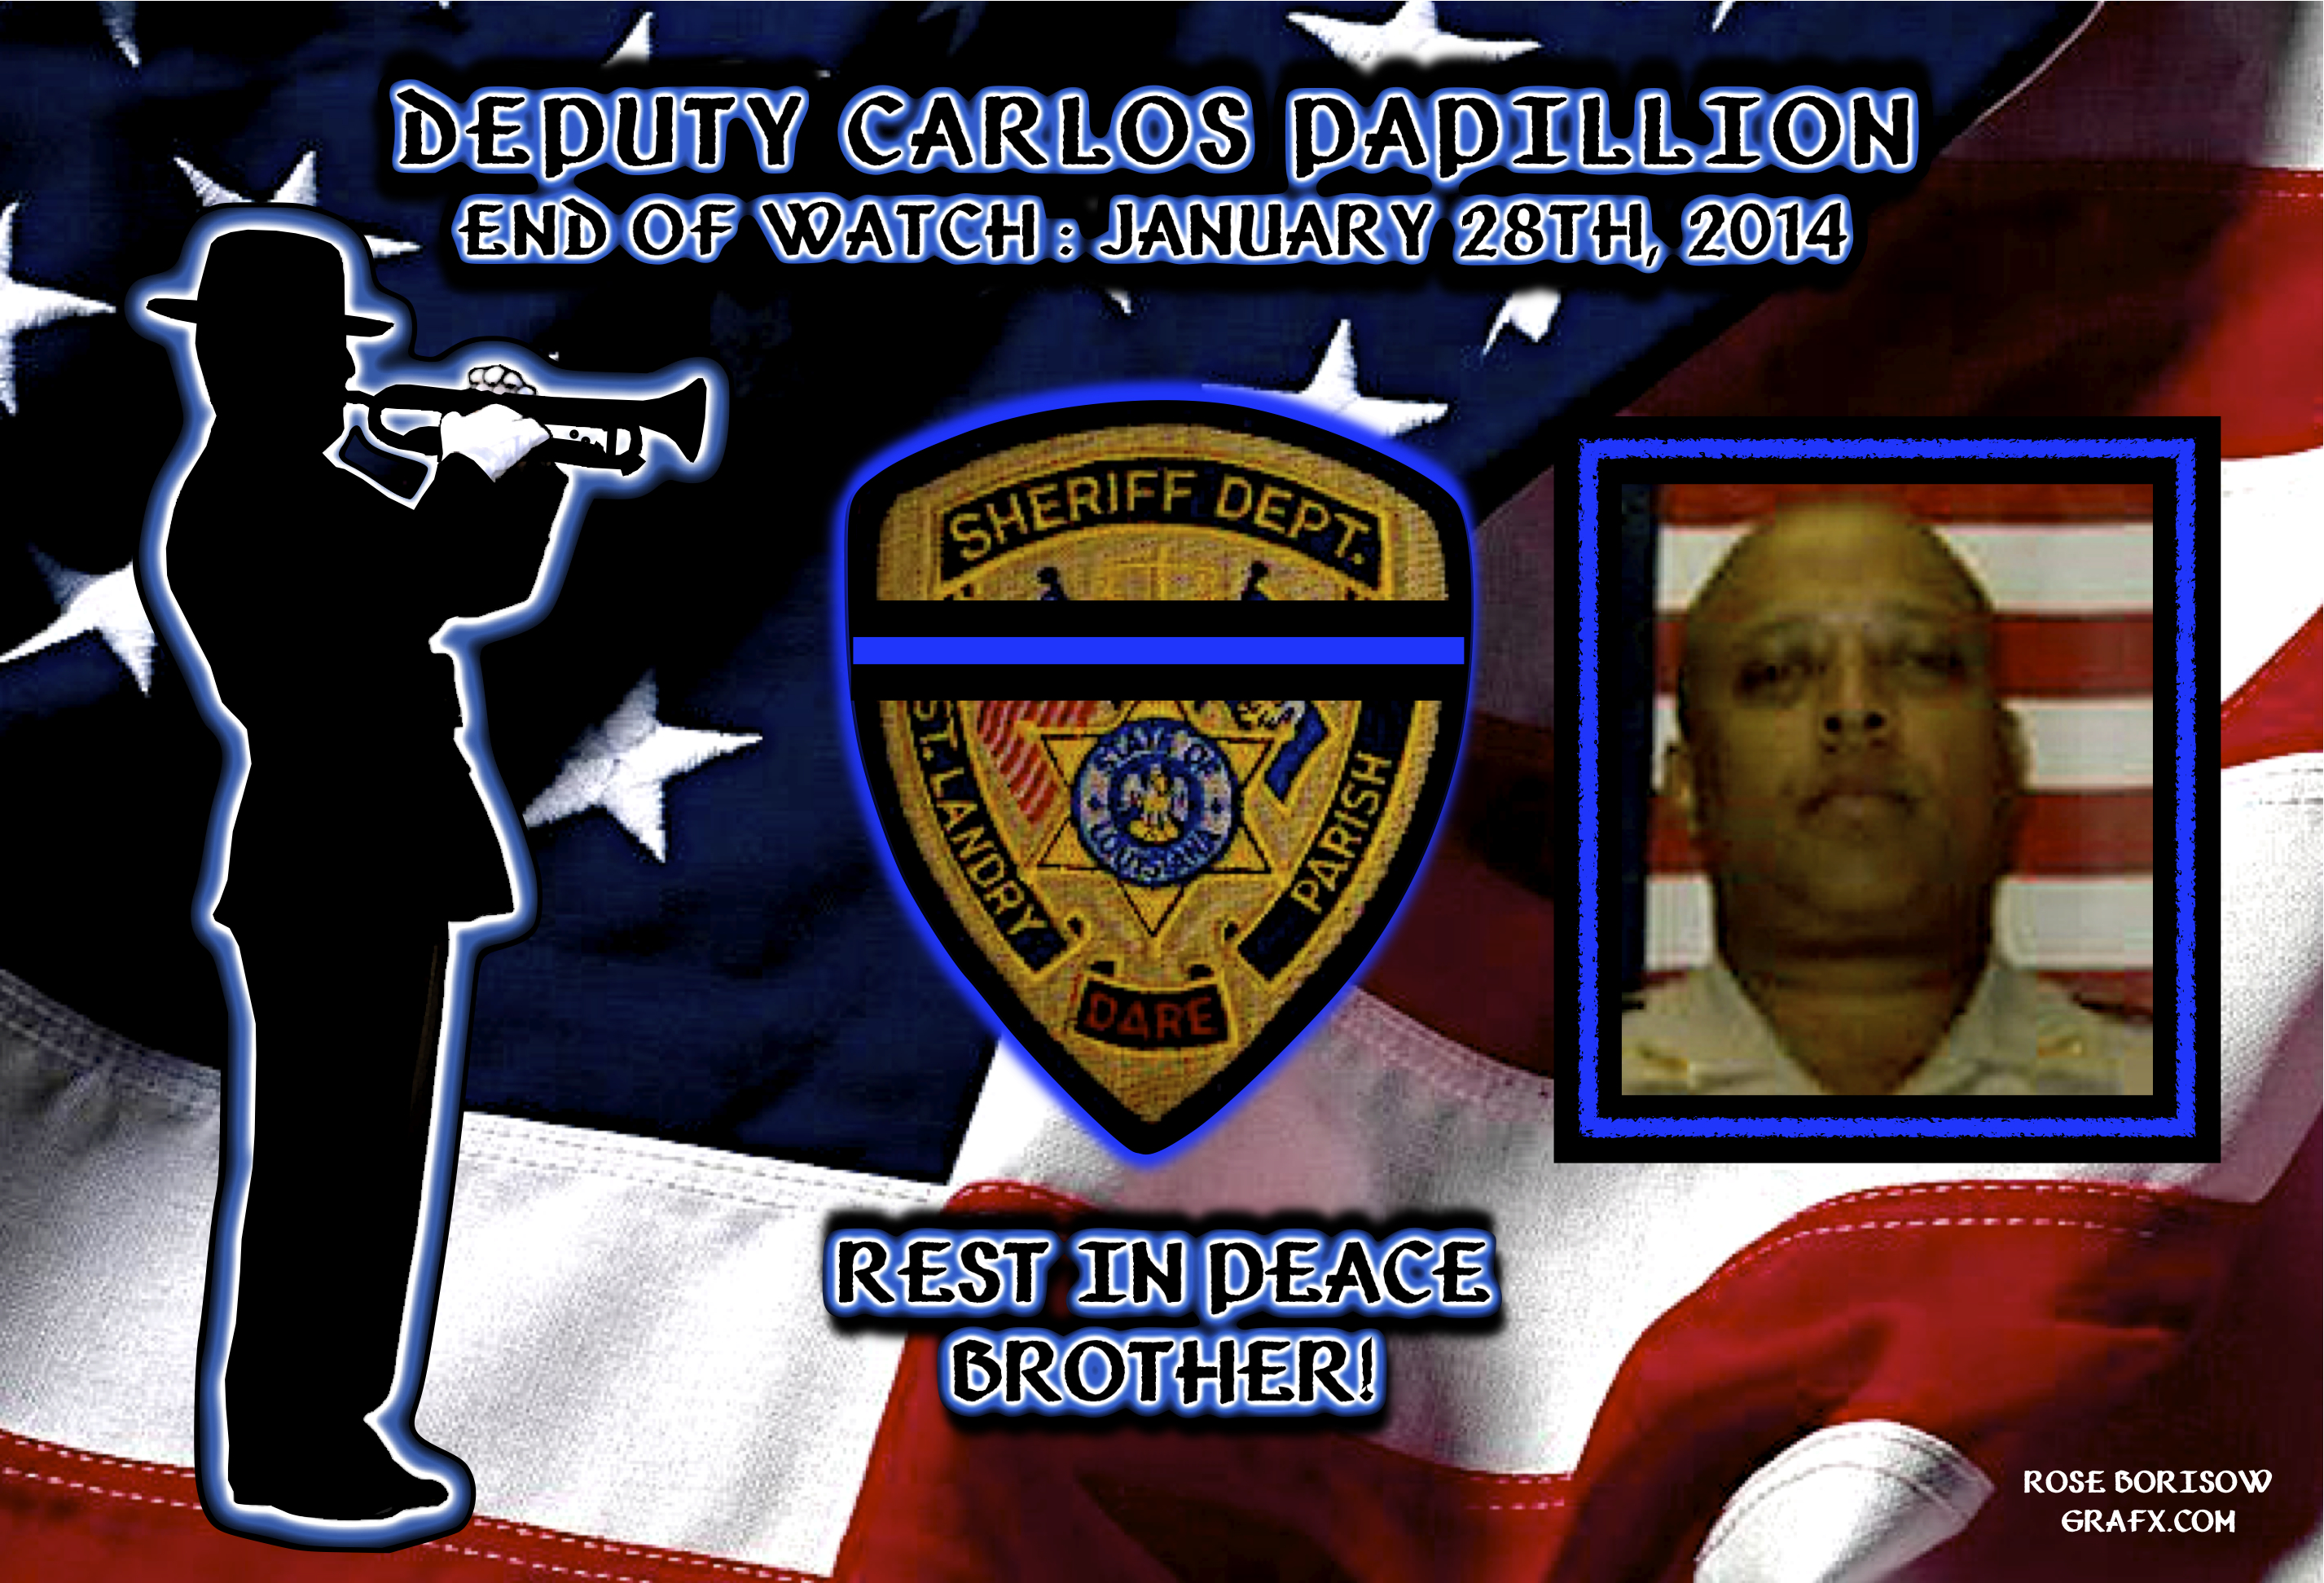 Fallen Officer-Papillion-St. Landry Parish